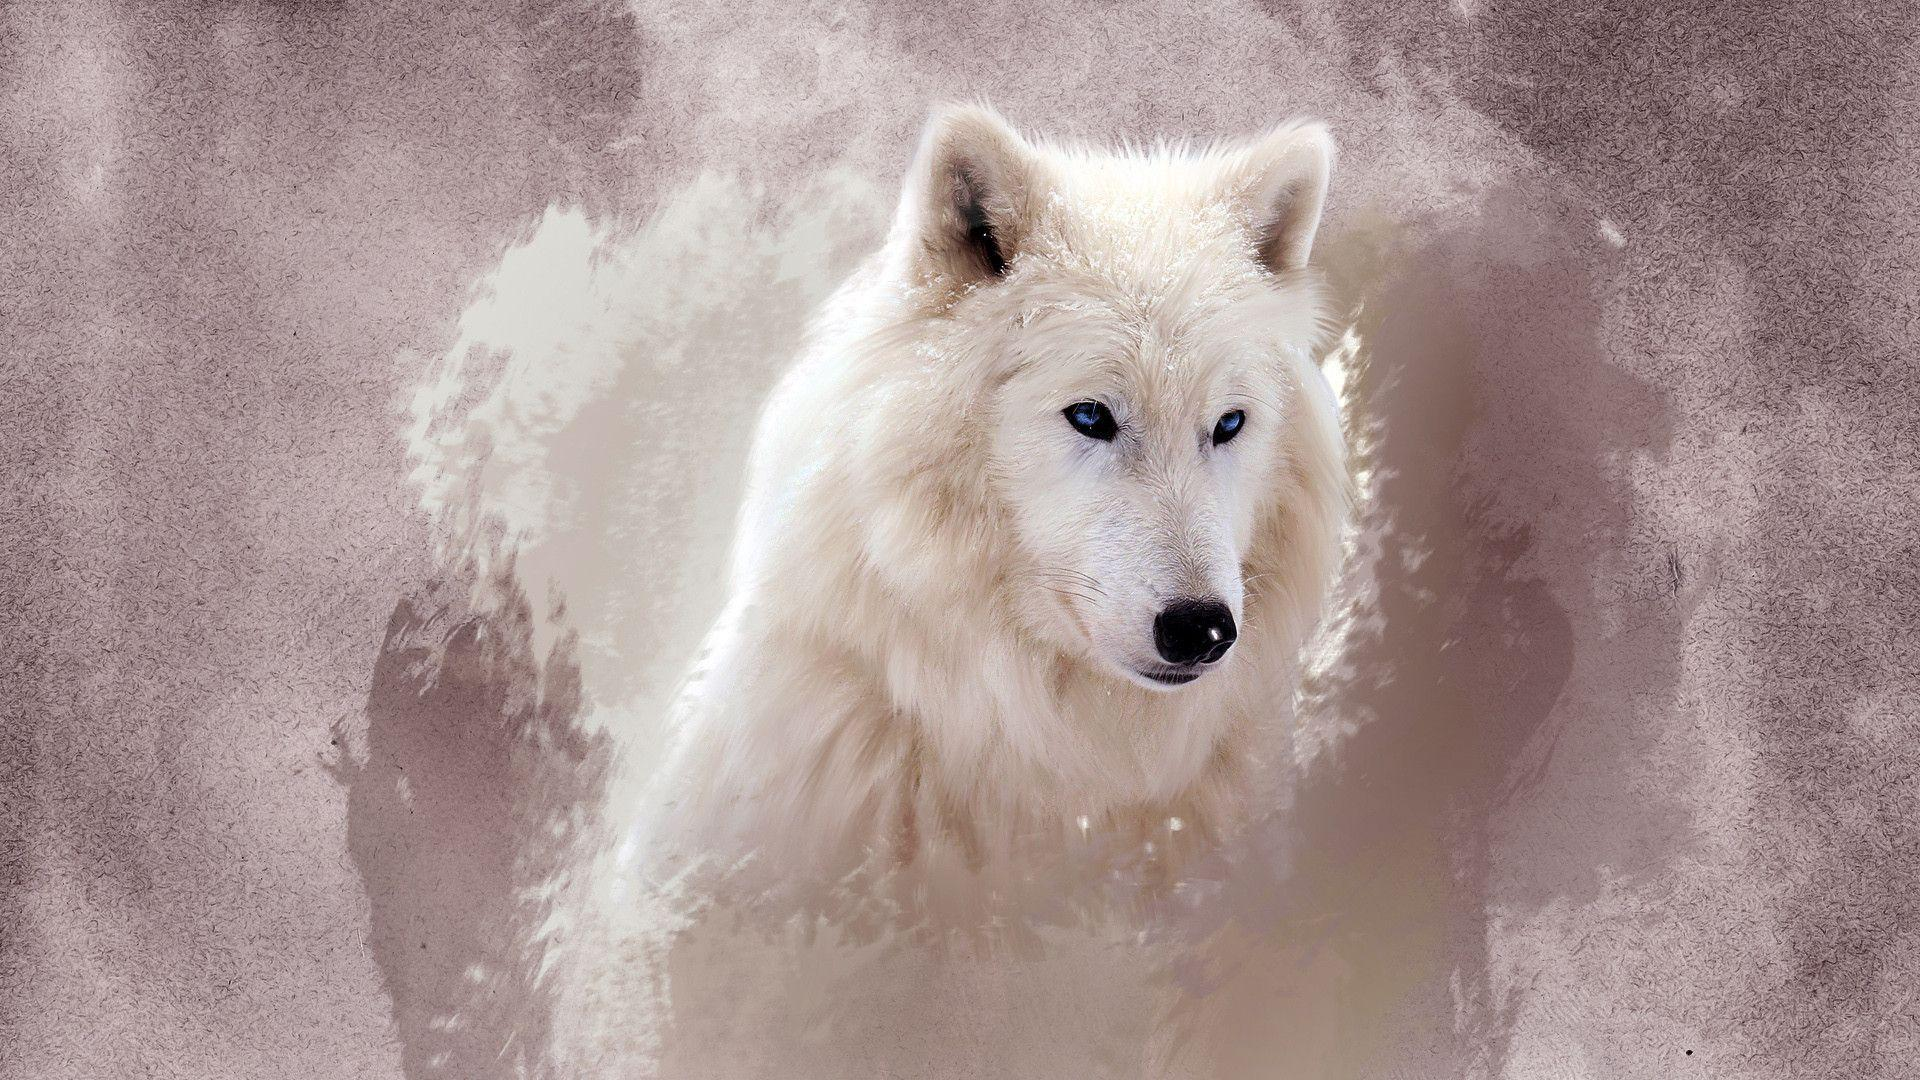 The Wolf Wallpapers   HD Wallpapers